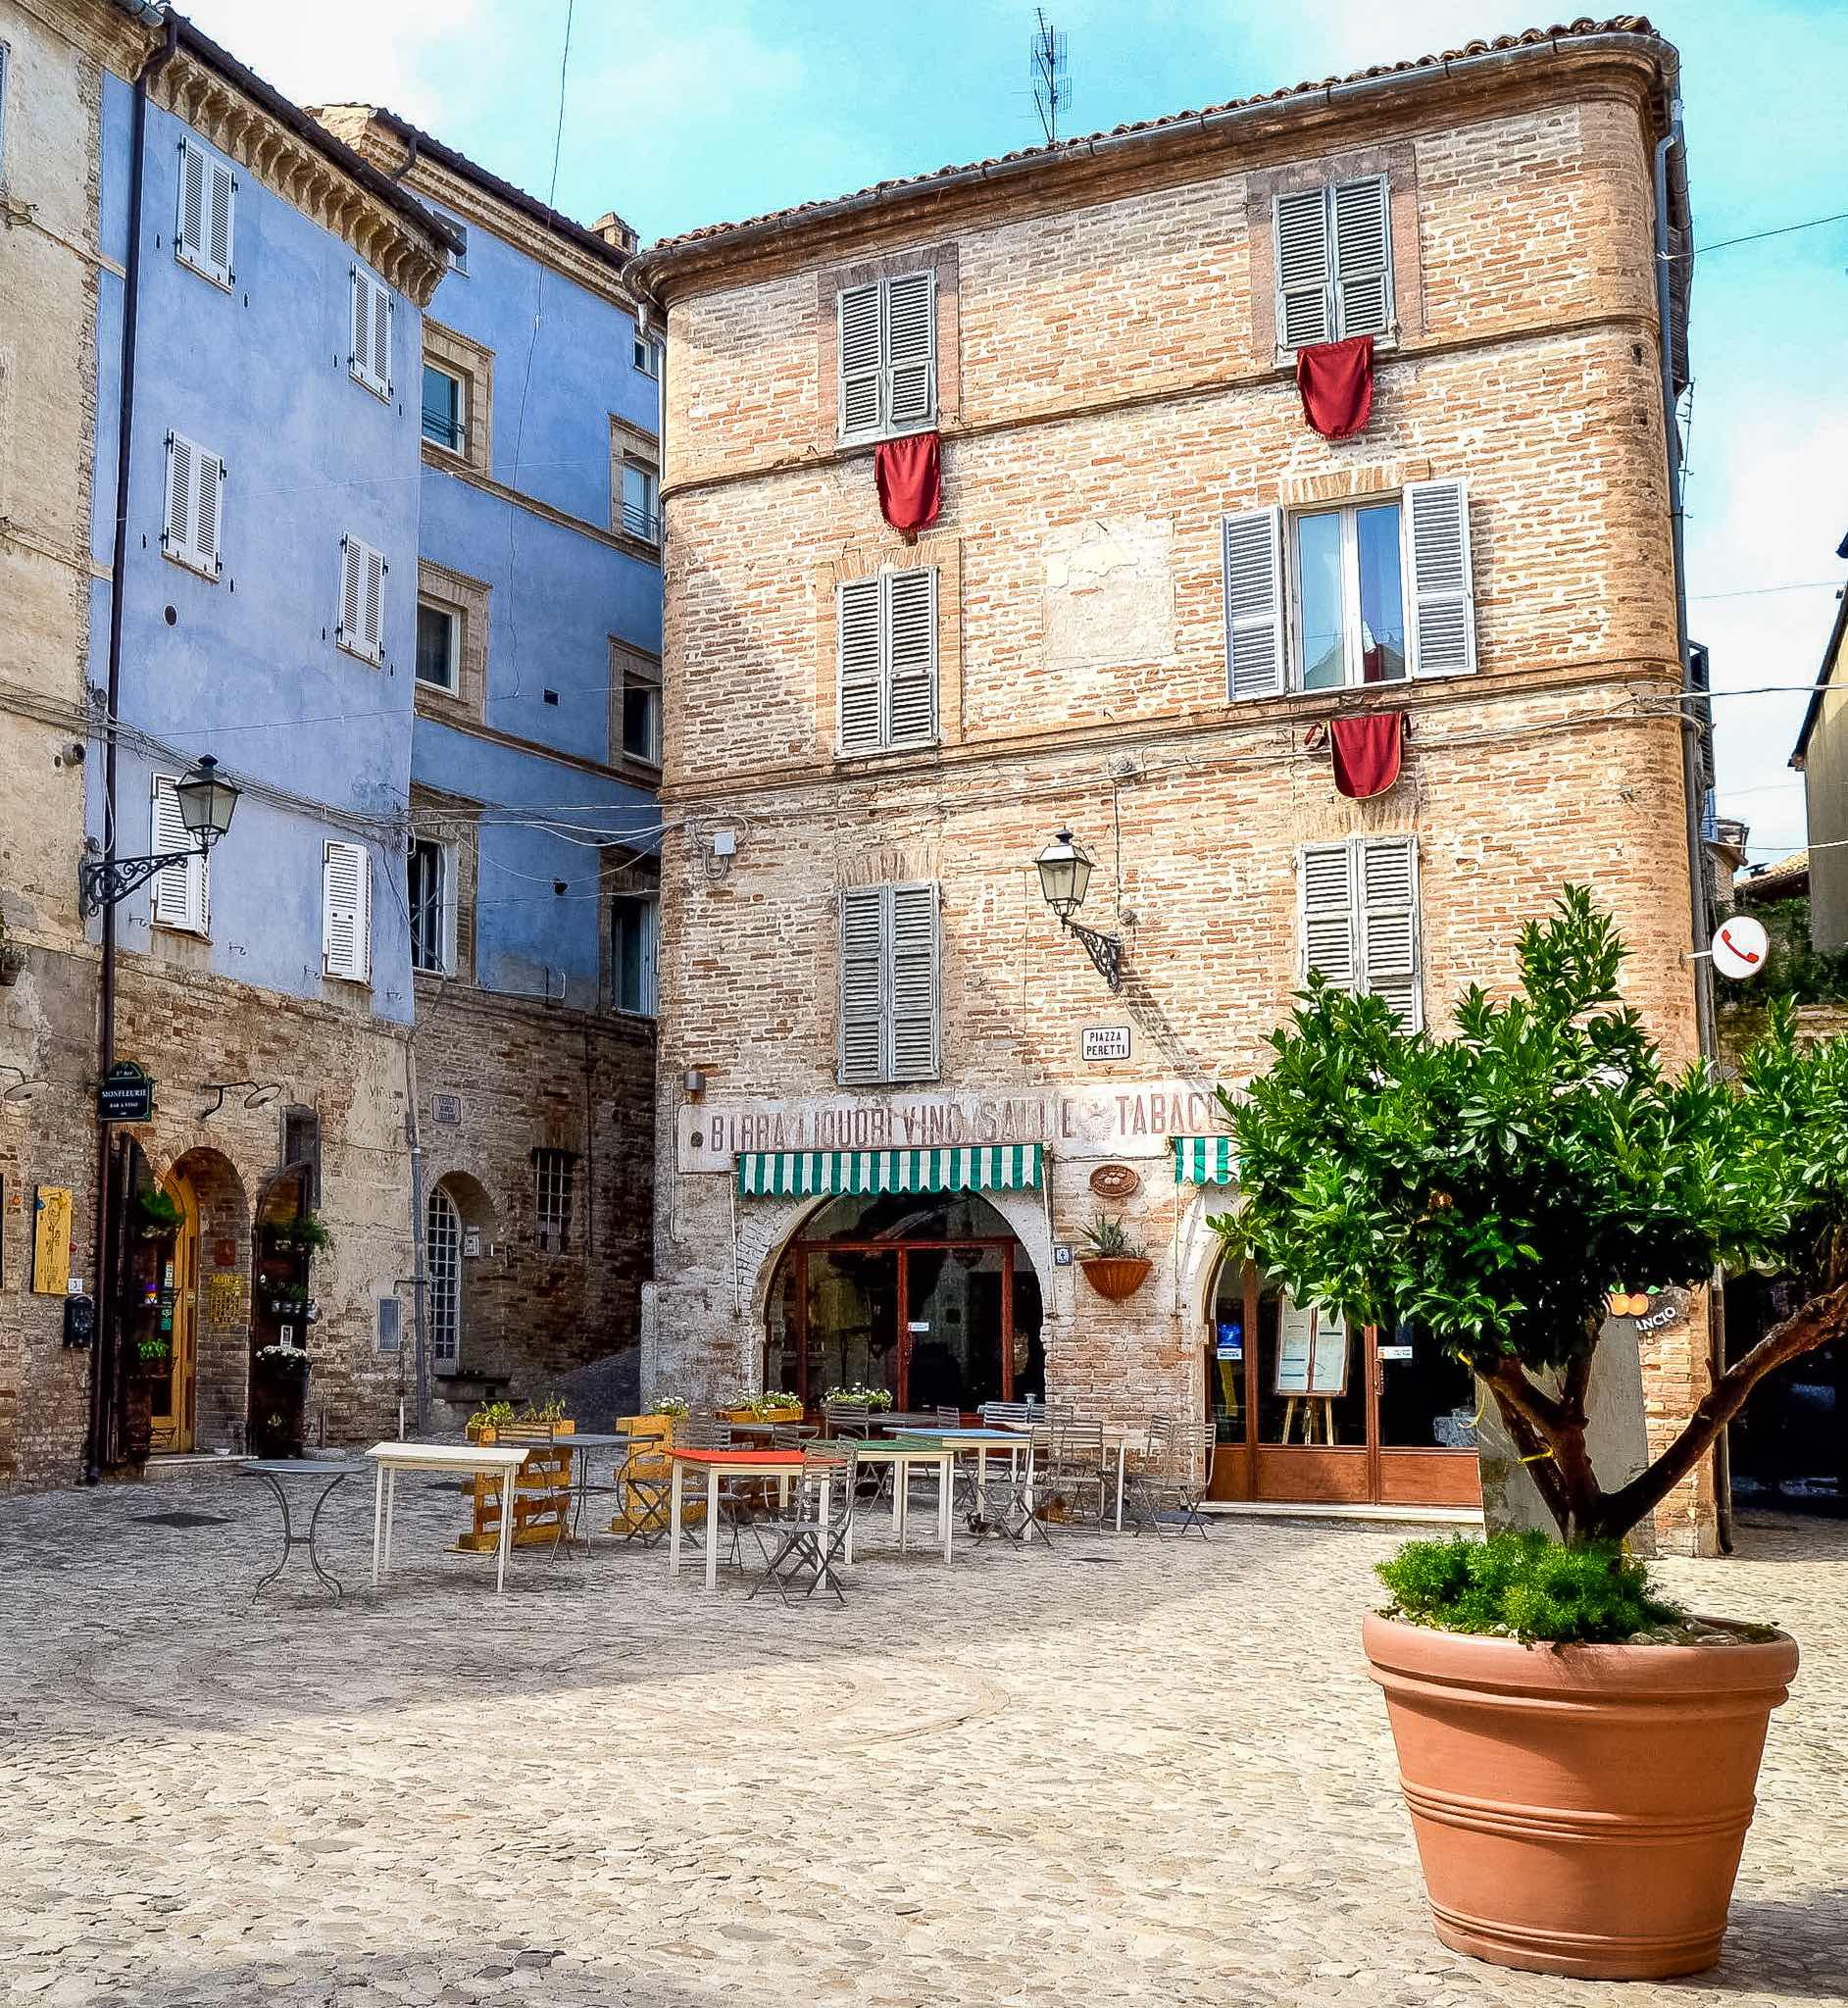 The old town of Grottammare, one of the most beautiful beach town in the region of Le Marche